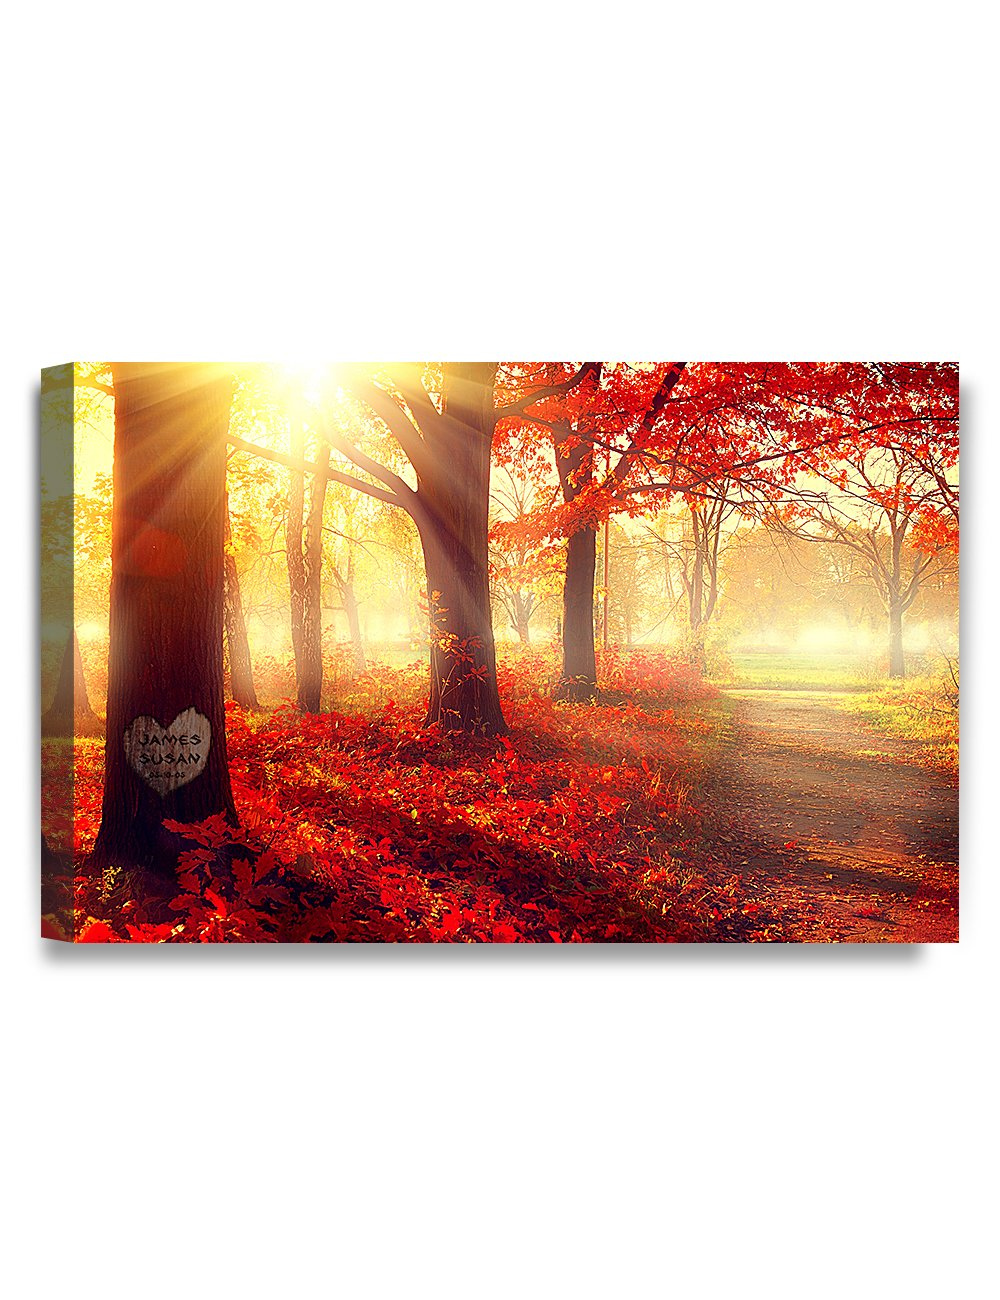 IPIC - ''You Are My Sunshine'', Personalized Artwork with Names and Date on, Perfect love gift for Anniversary,Wedding,Birthday and Holidays. Picture size: 30x20'', Framed Size: 33x23x1.25'' by IPIC (Image #2)